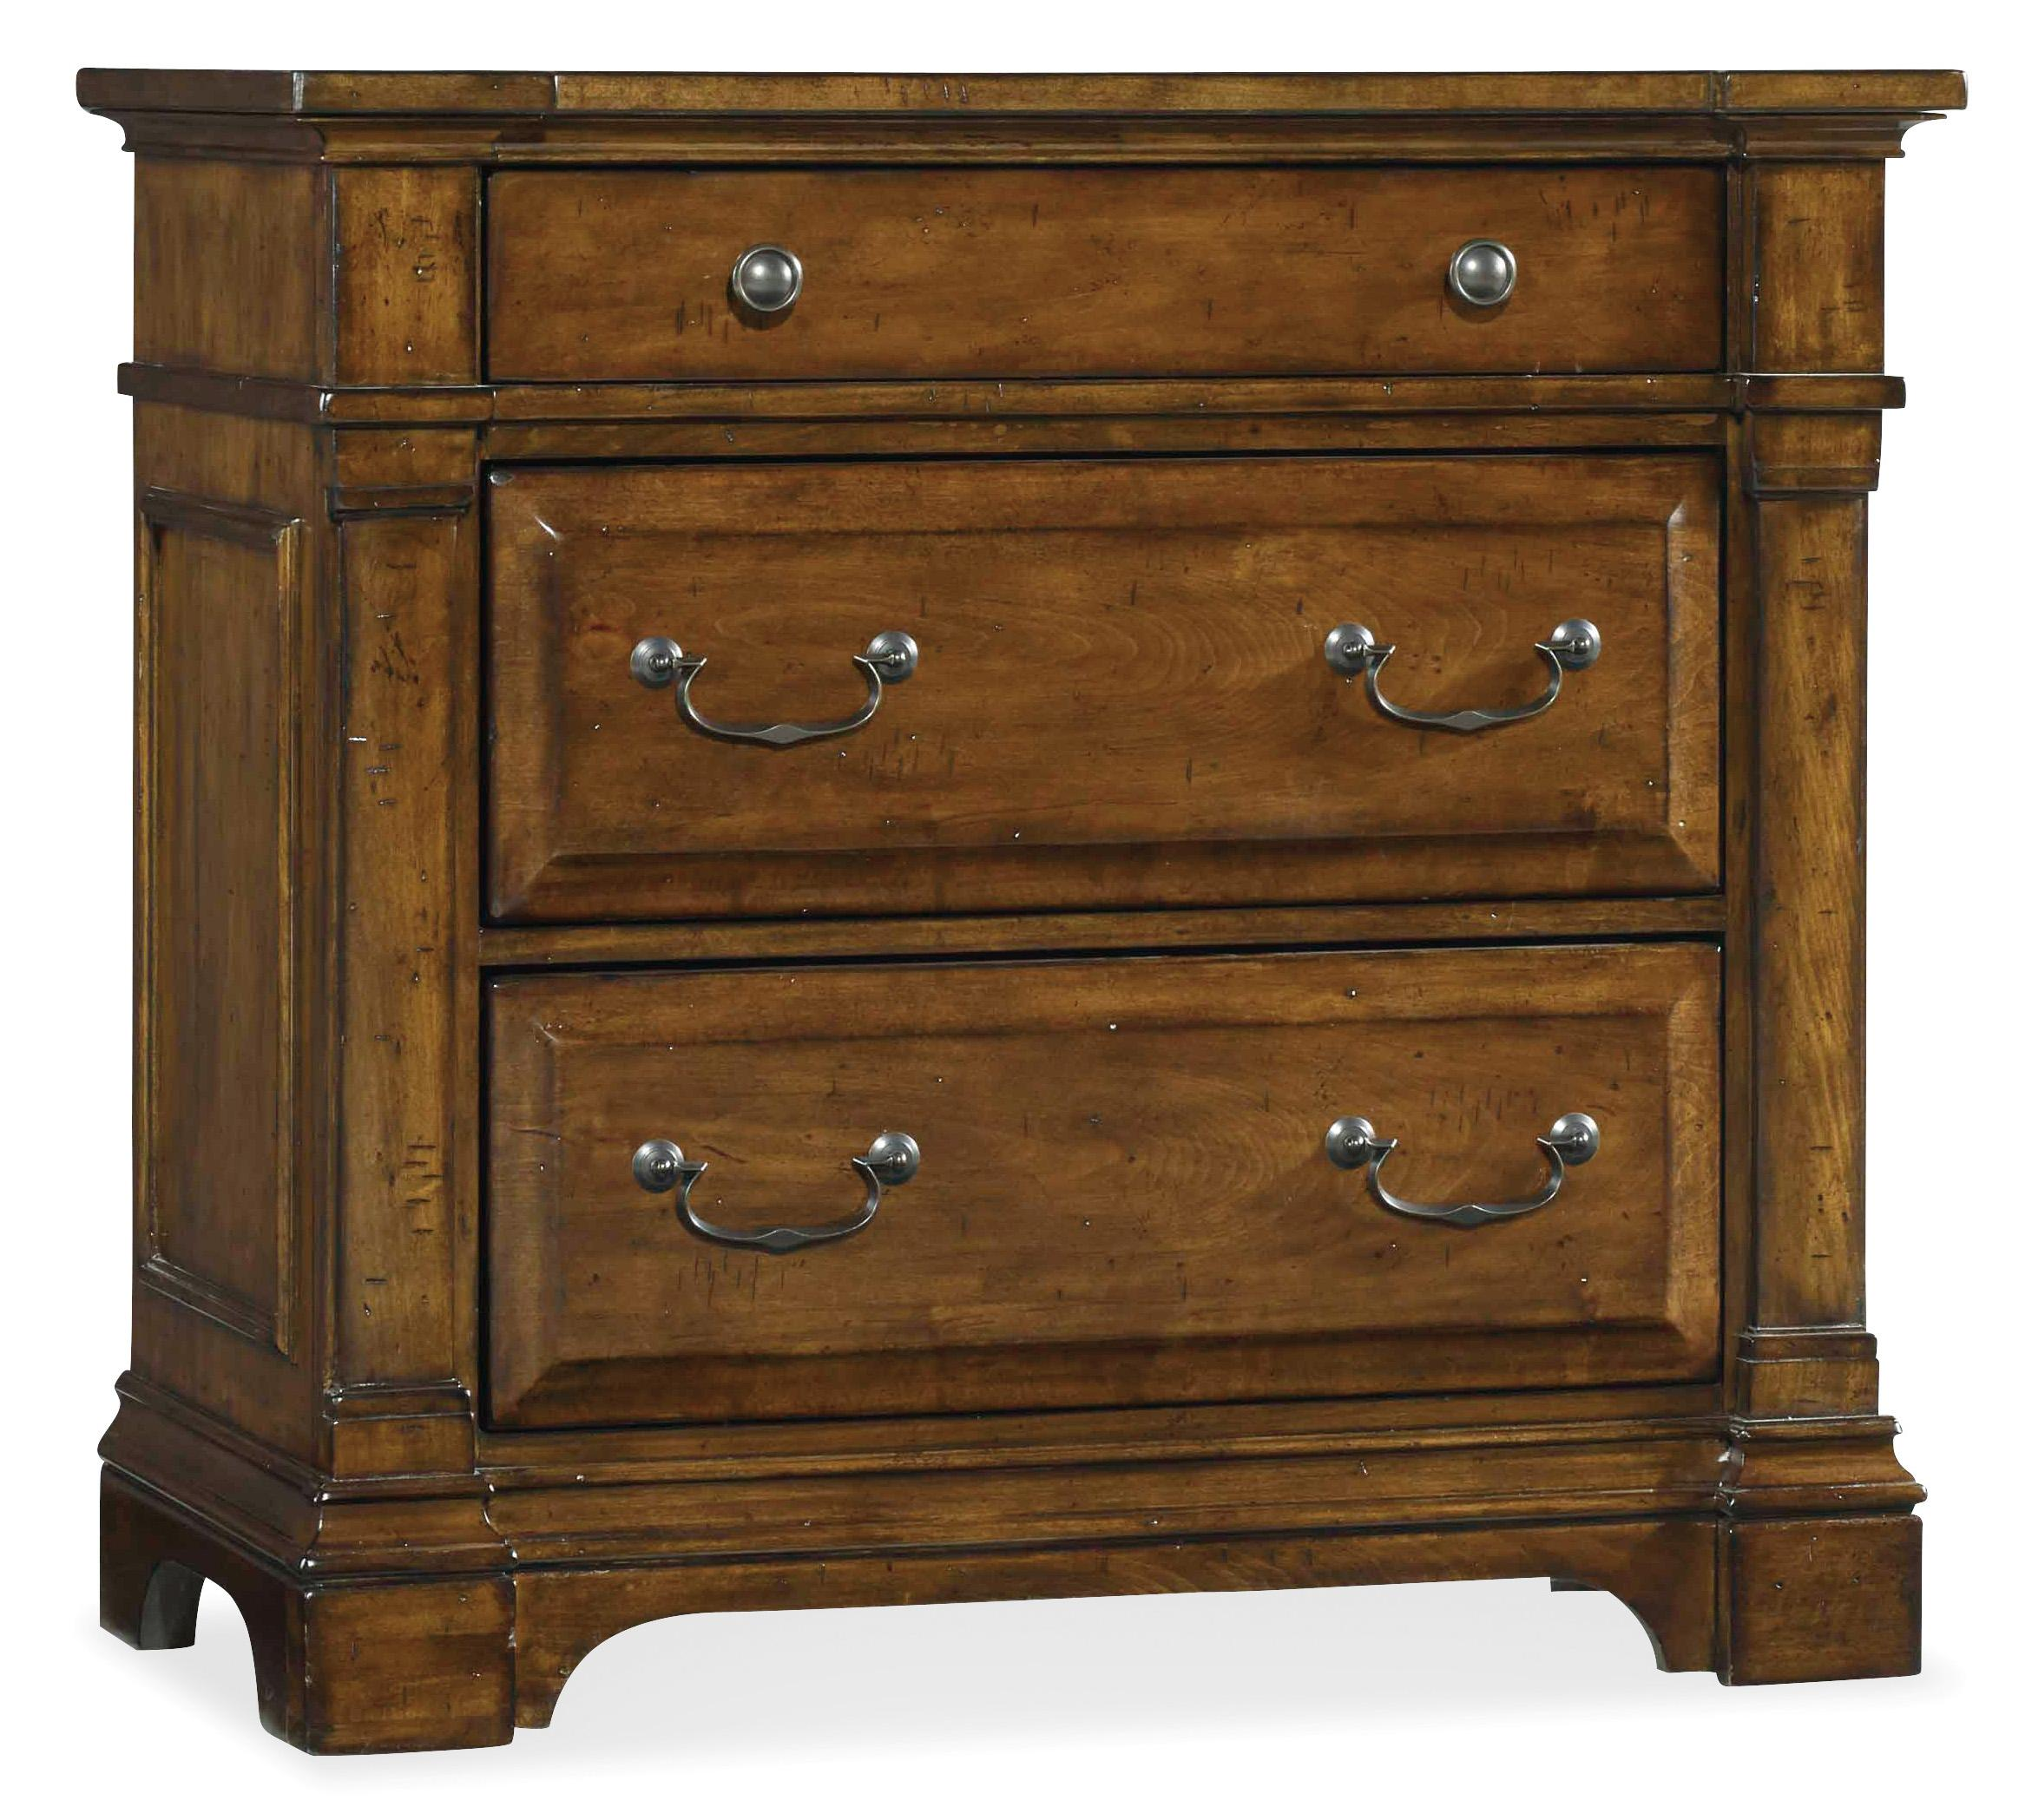 Hooker Furniture Tynecastle Bachelors Chest - Item Number: 5323-90017